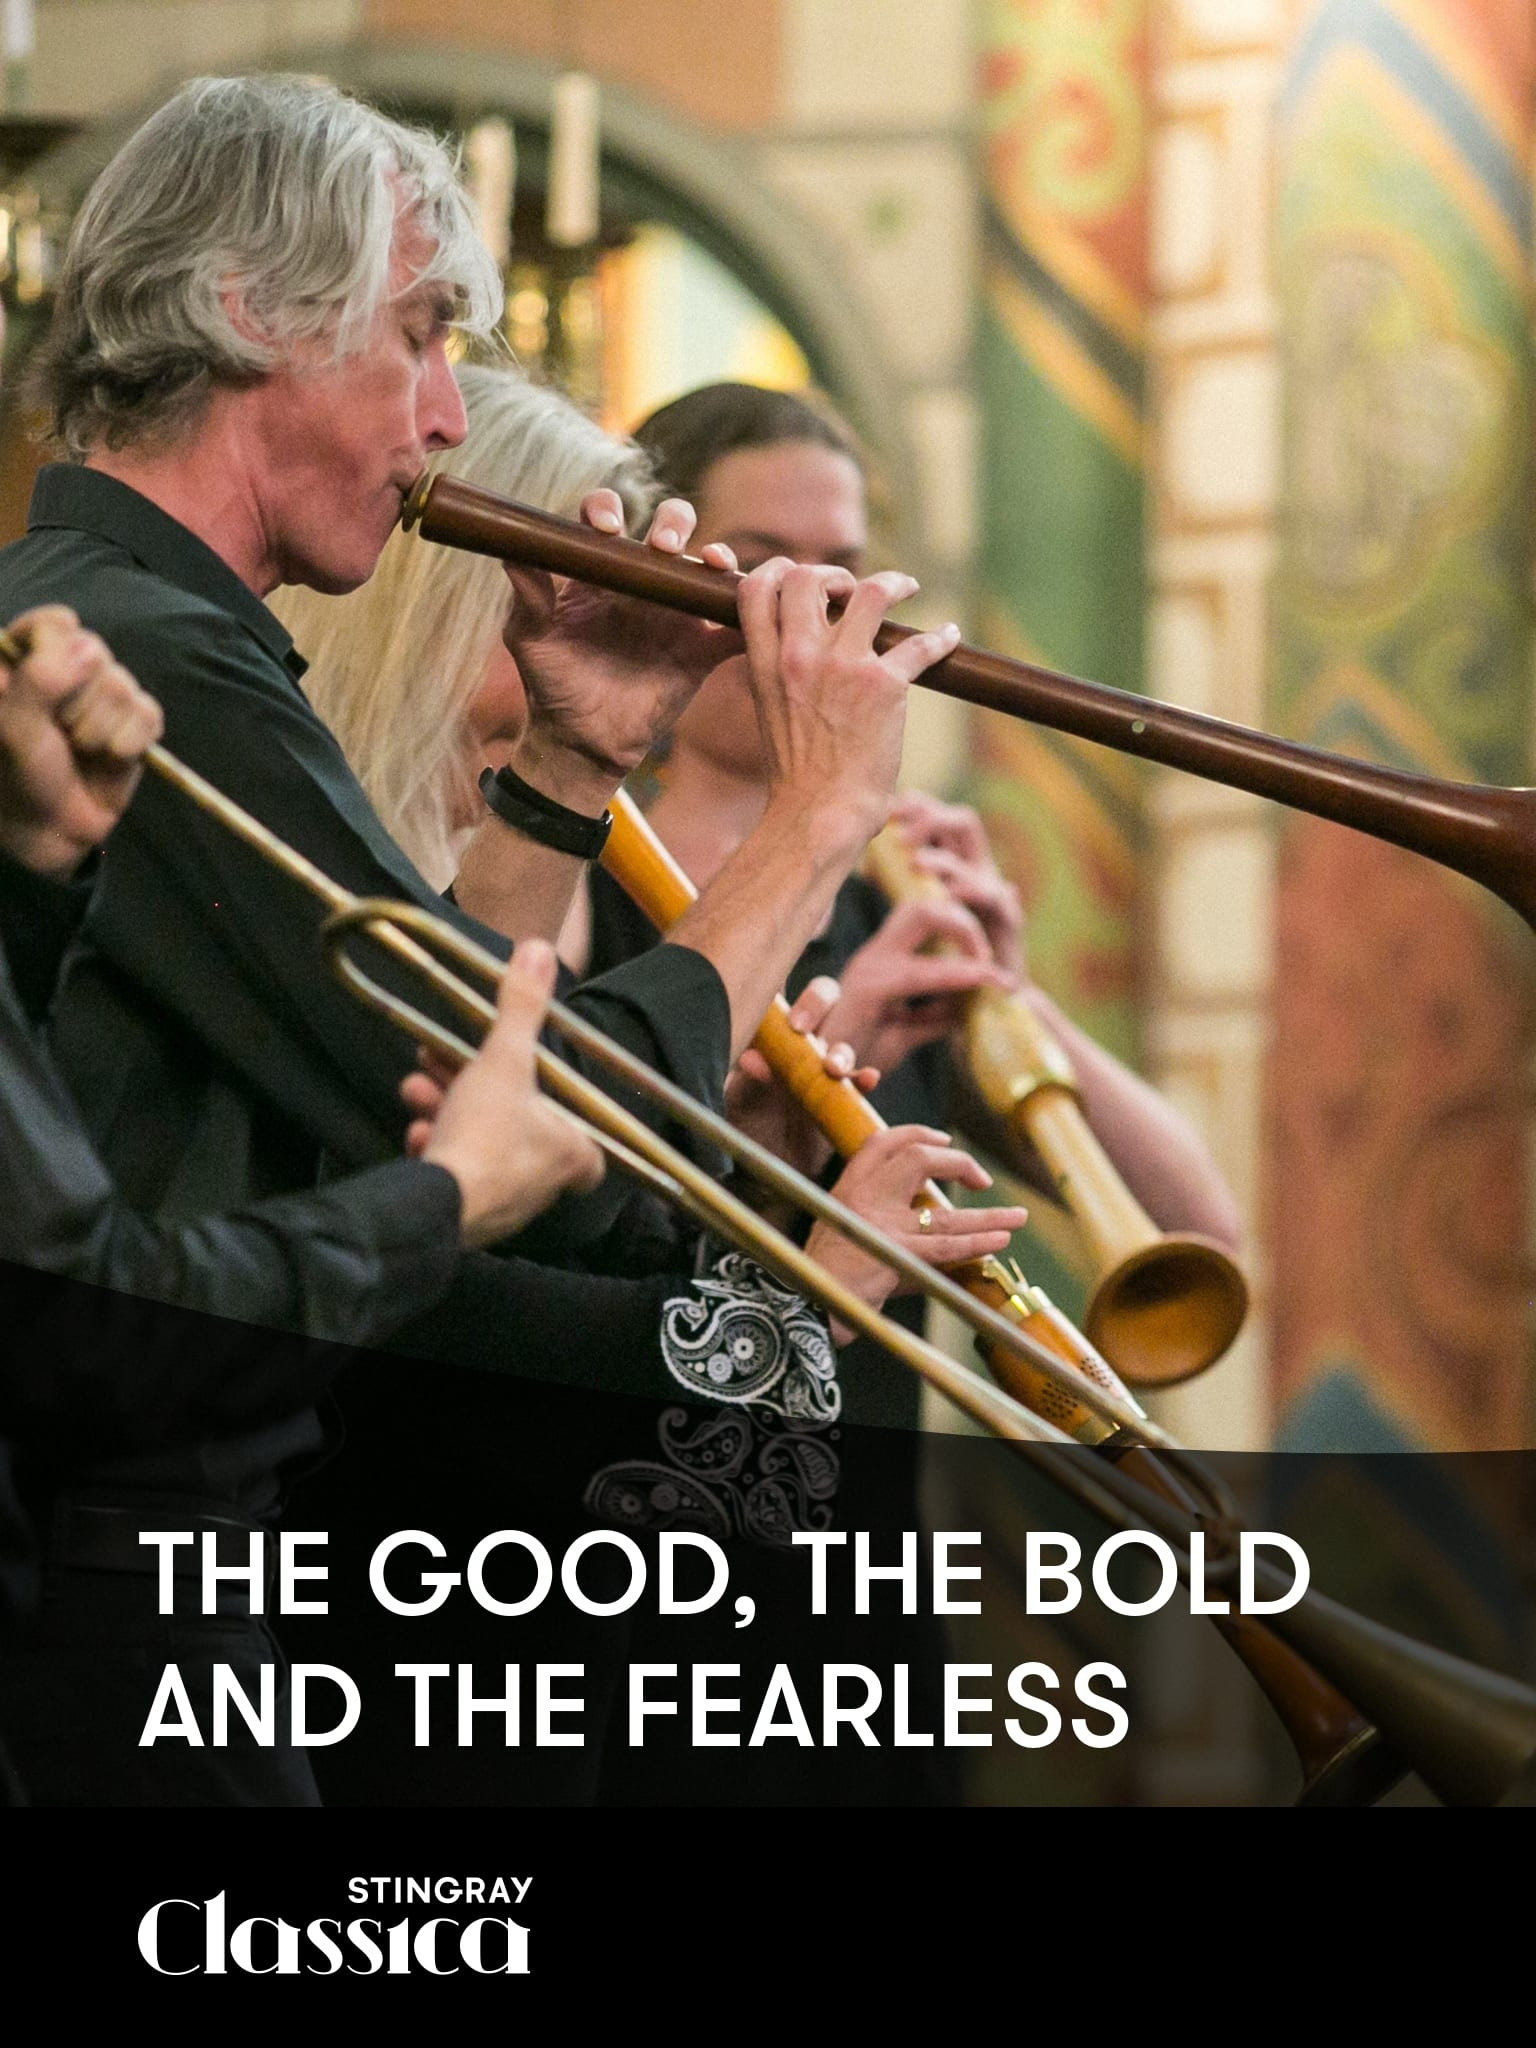 The Good, the Bold and the Fearless